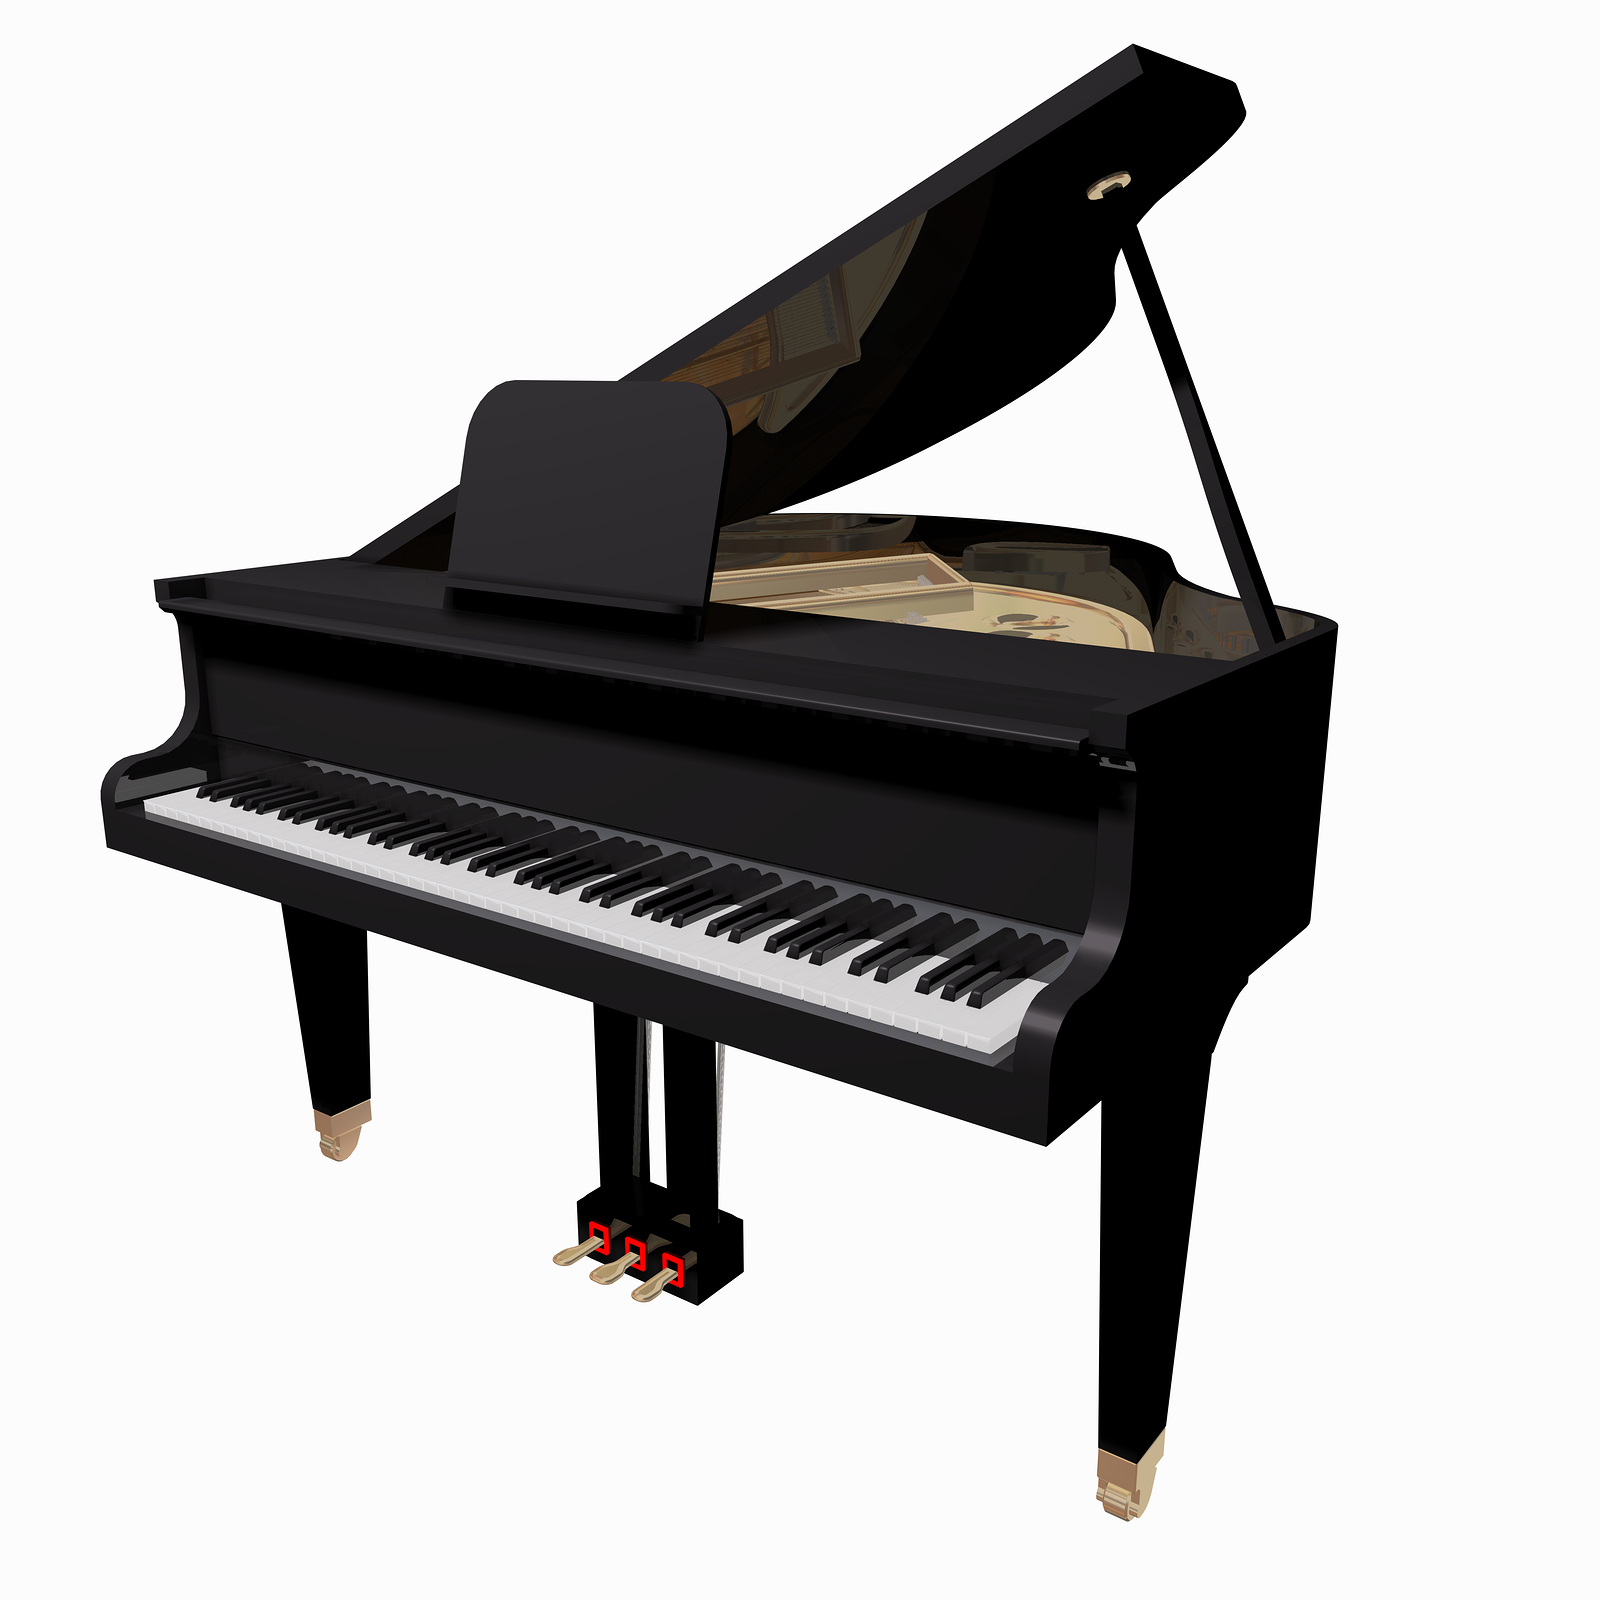 learn how to play piano using computer keyboard